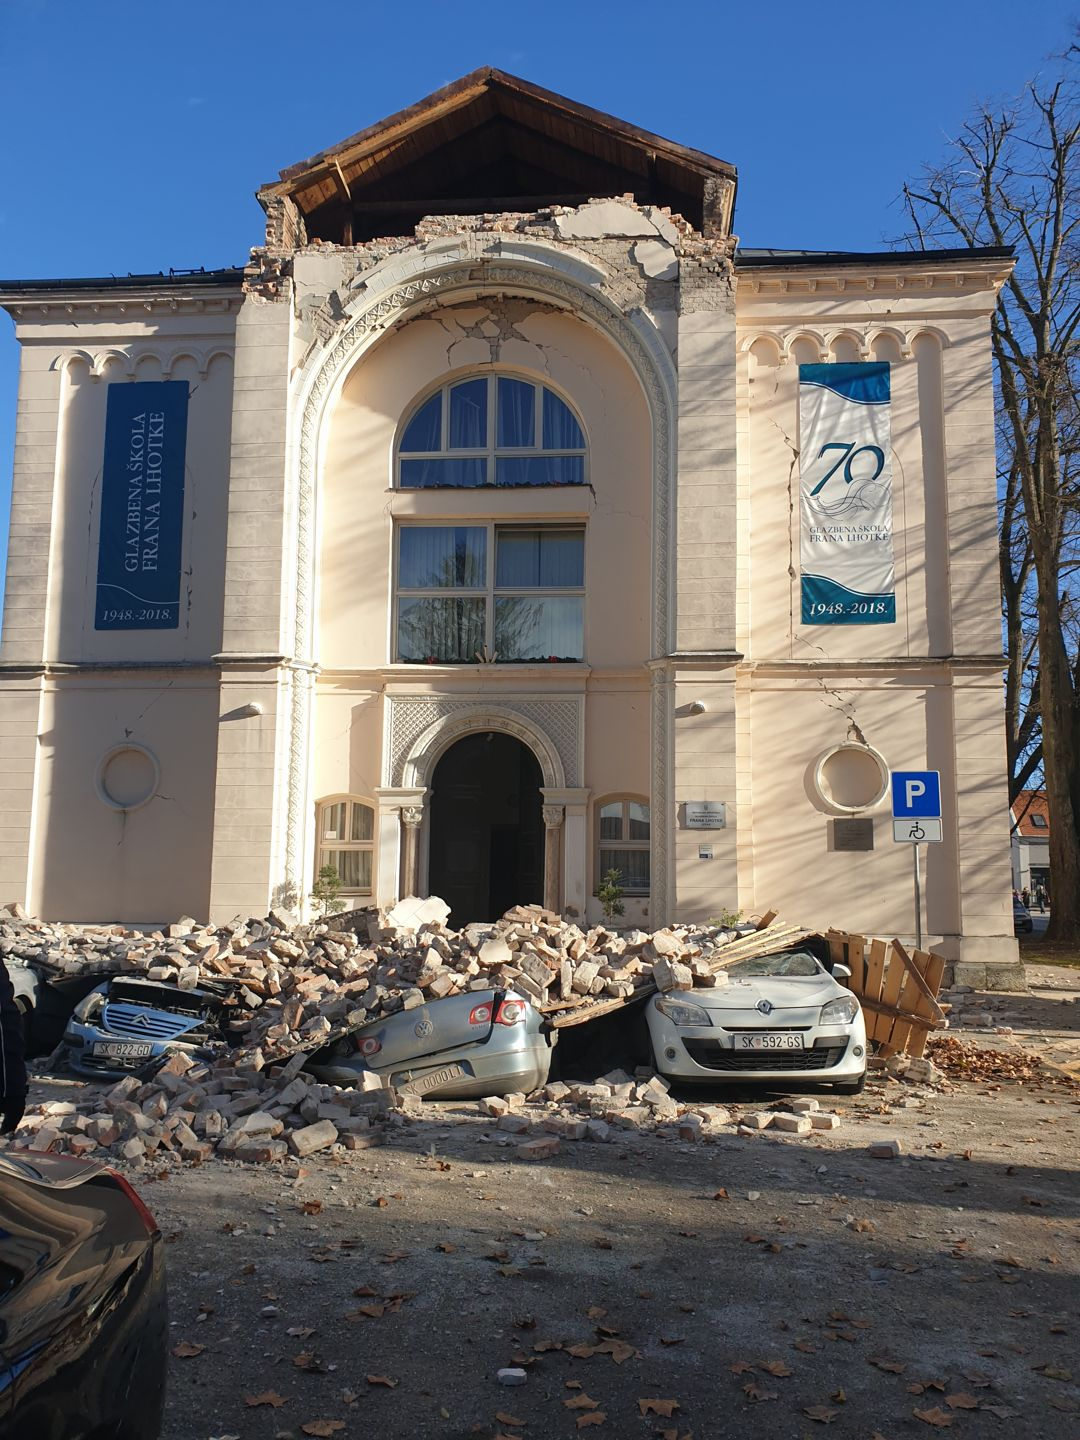 Music School (former synagogue) in Sisak after the Petrinja earthquake on 29 December 2020. Image owned by, and published with permission from, the director of the Sisak Music School, Mr. Tomislav Ivšić.